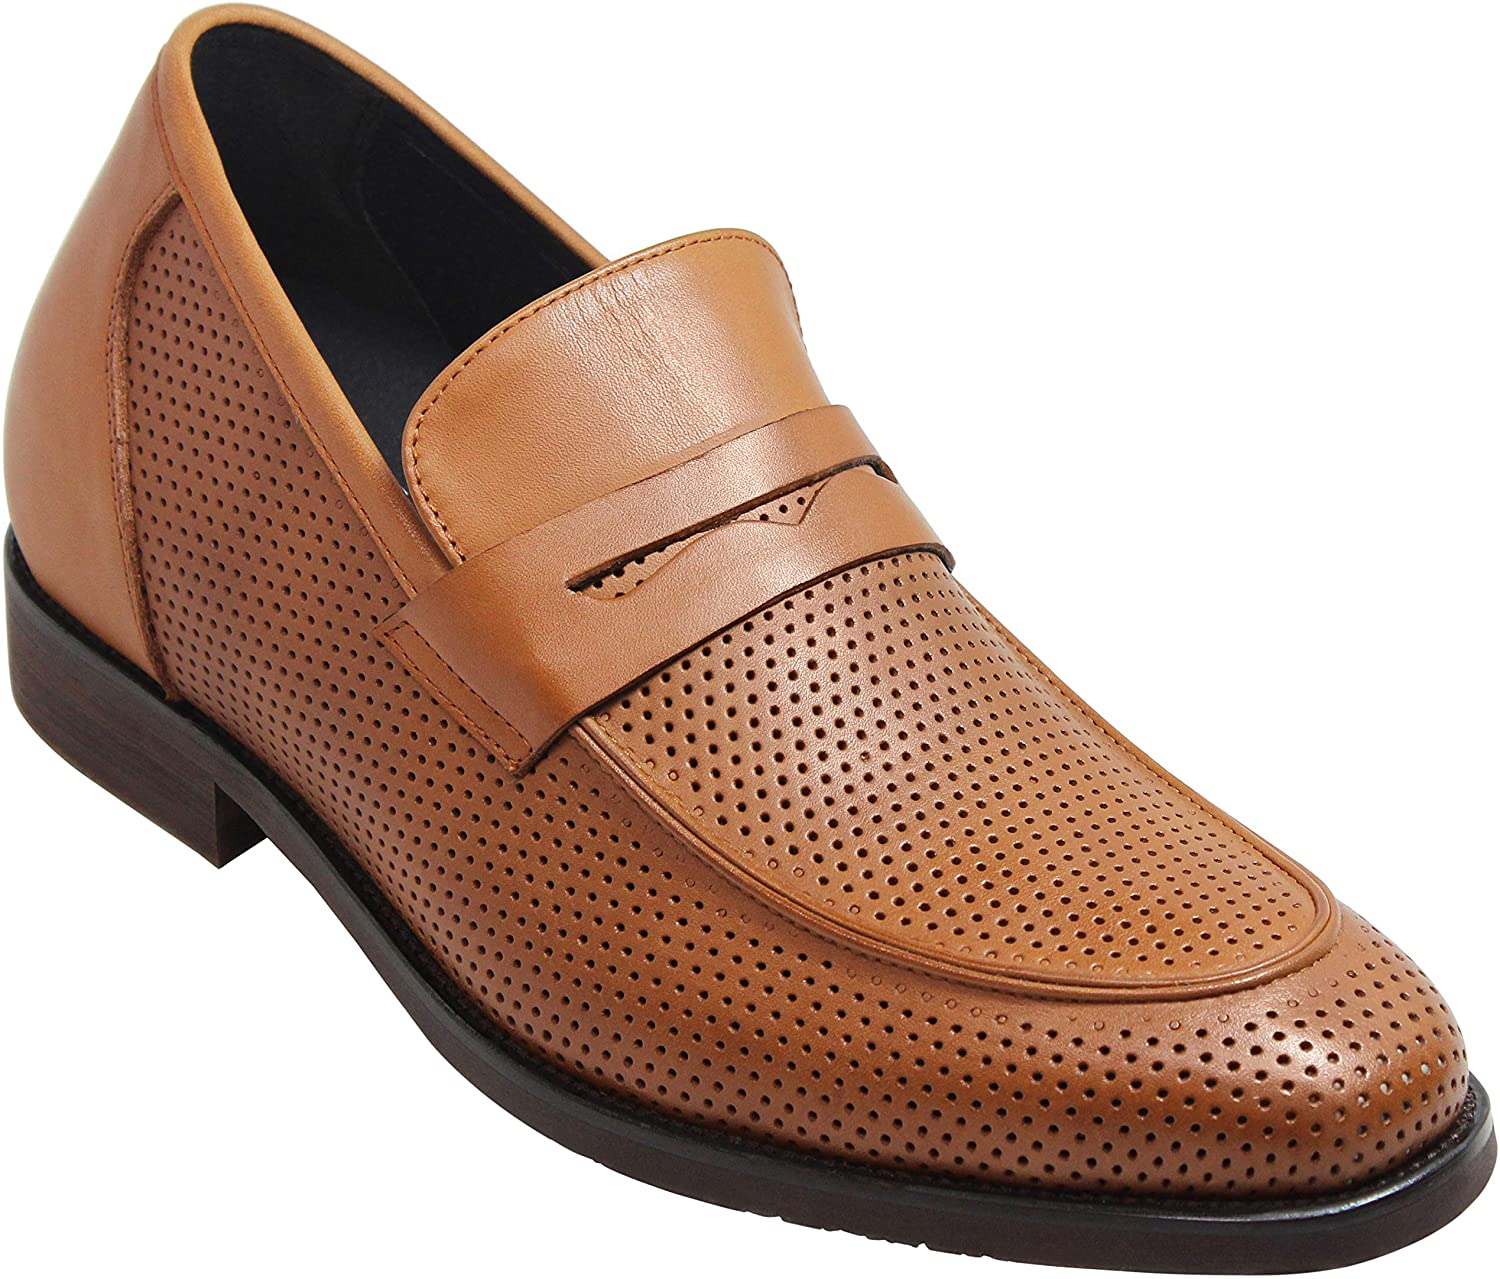 CALTO Men's Invisible Height Increasing Elevator Shoes - Brown Premium Leather Lightweight Perforated Penny Loafers - 2.8 Inches Taller - T9312